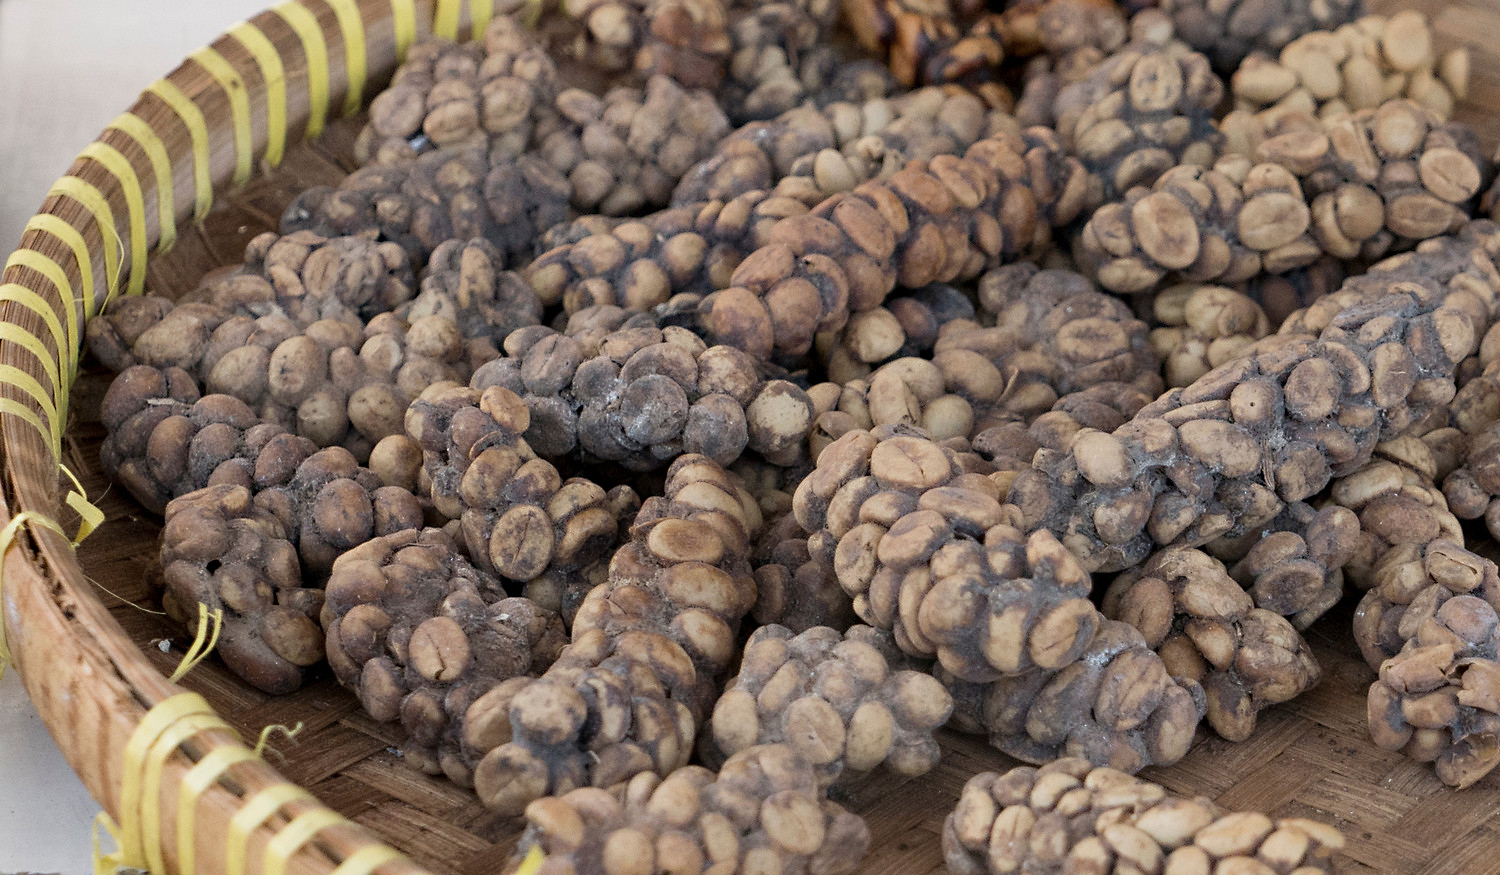 kopi luwak or civet coffee Kopi luwak or civet coffee, refers to the coffee that includes part-digested coffee cherries eaten and defecated by the asian palm civet.